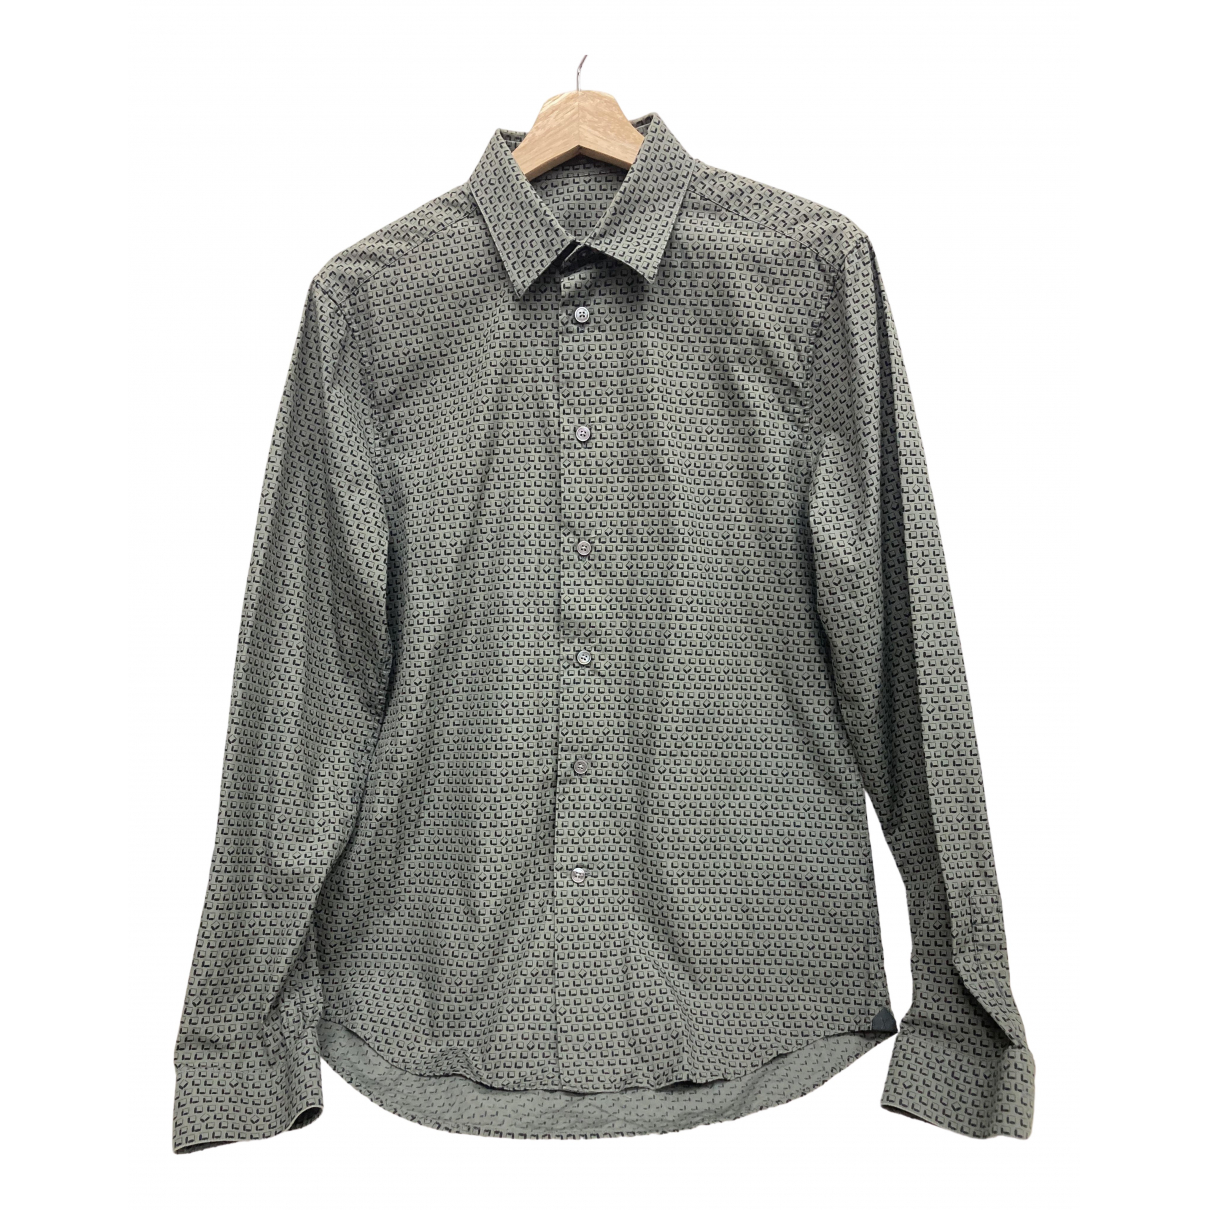 Louis Vuitton \N Green Cotton Shirts for Men S International